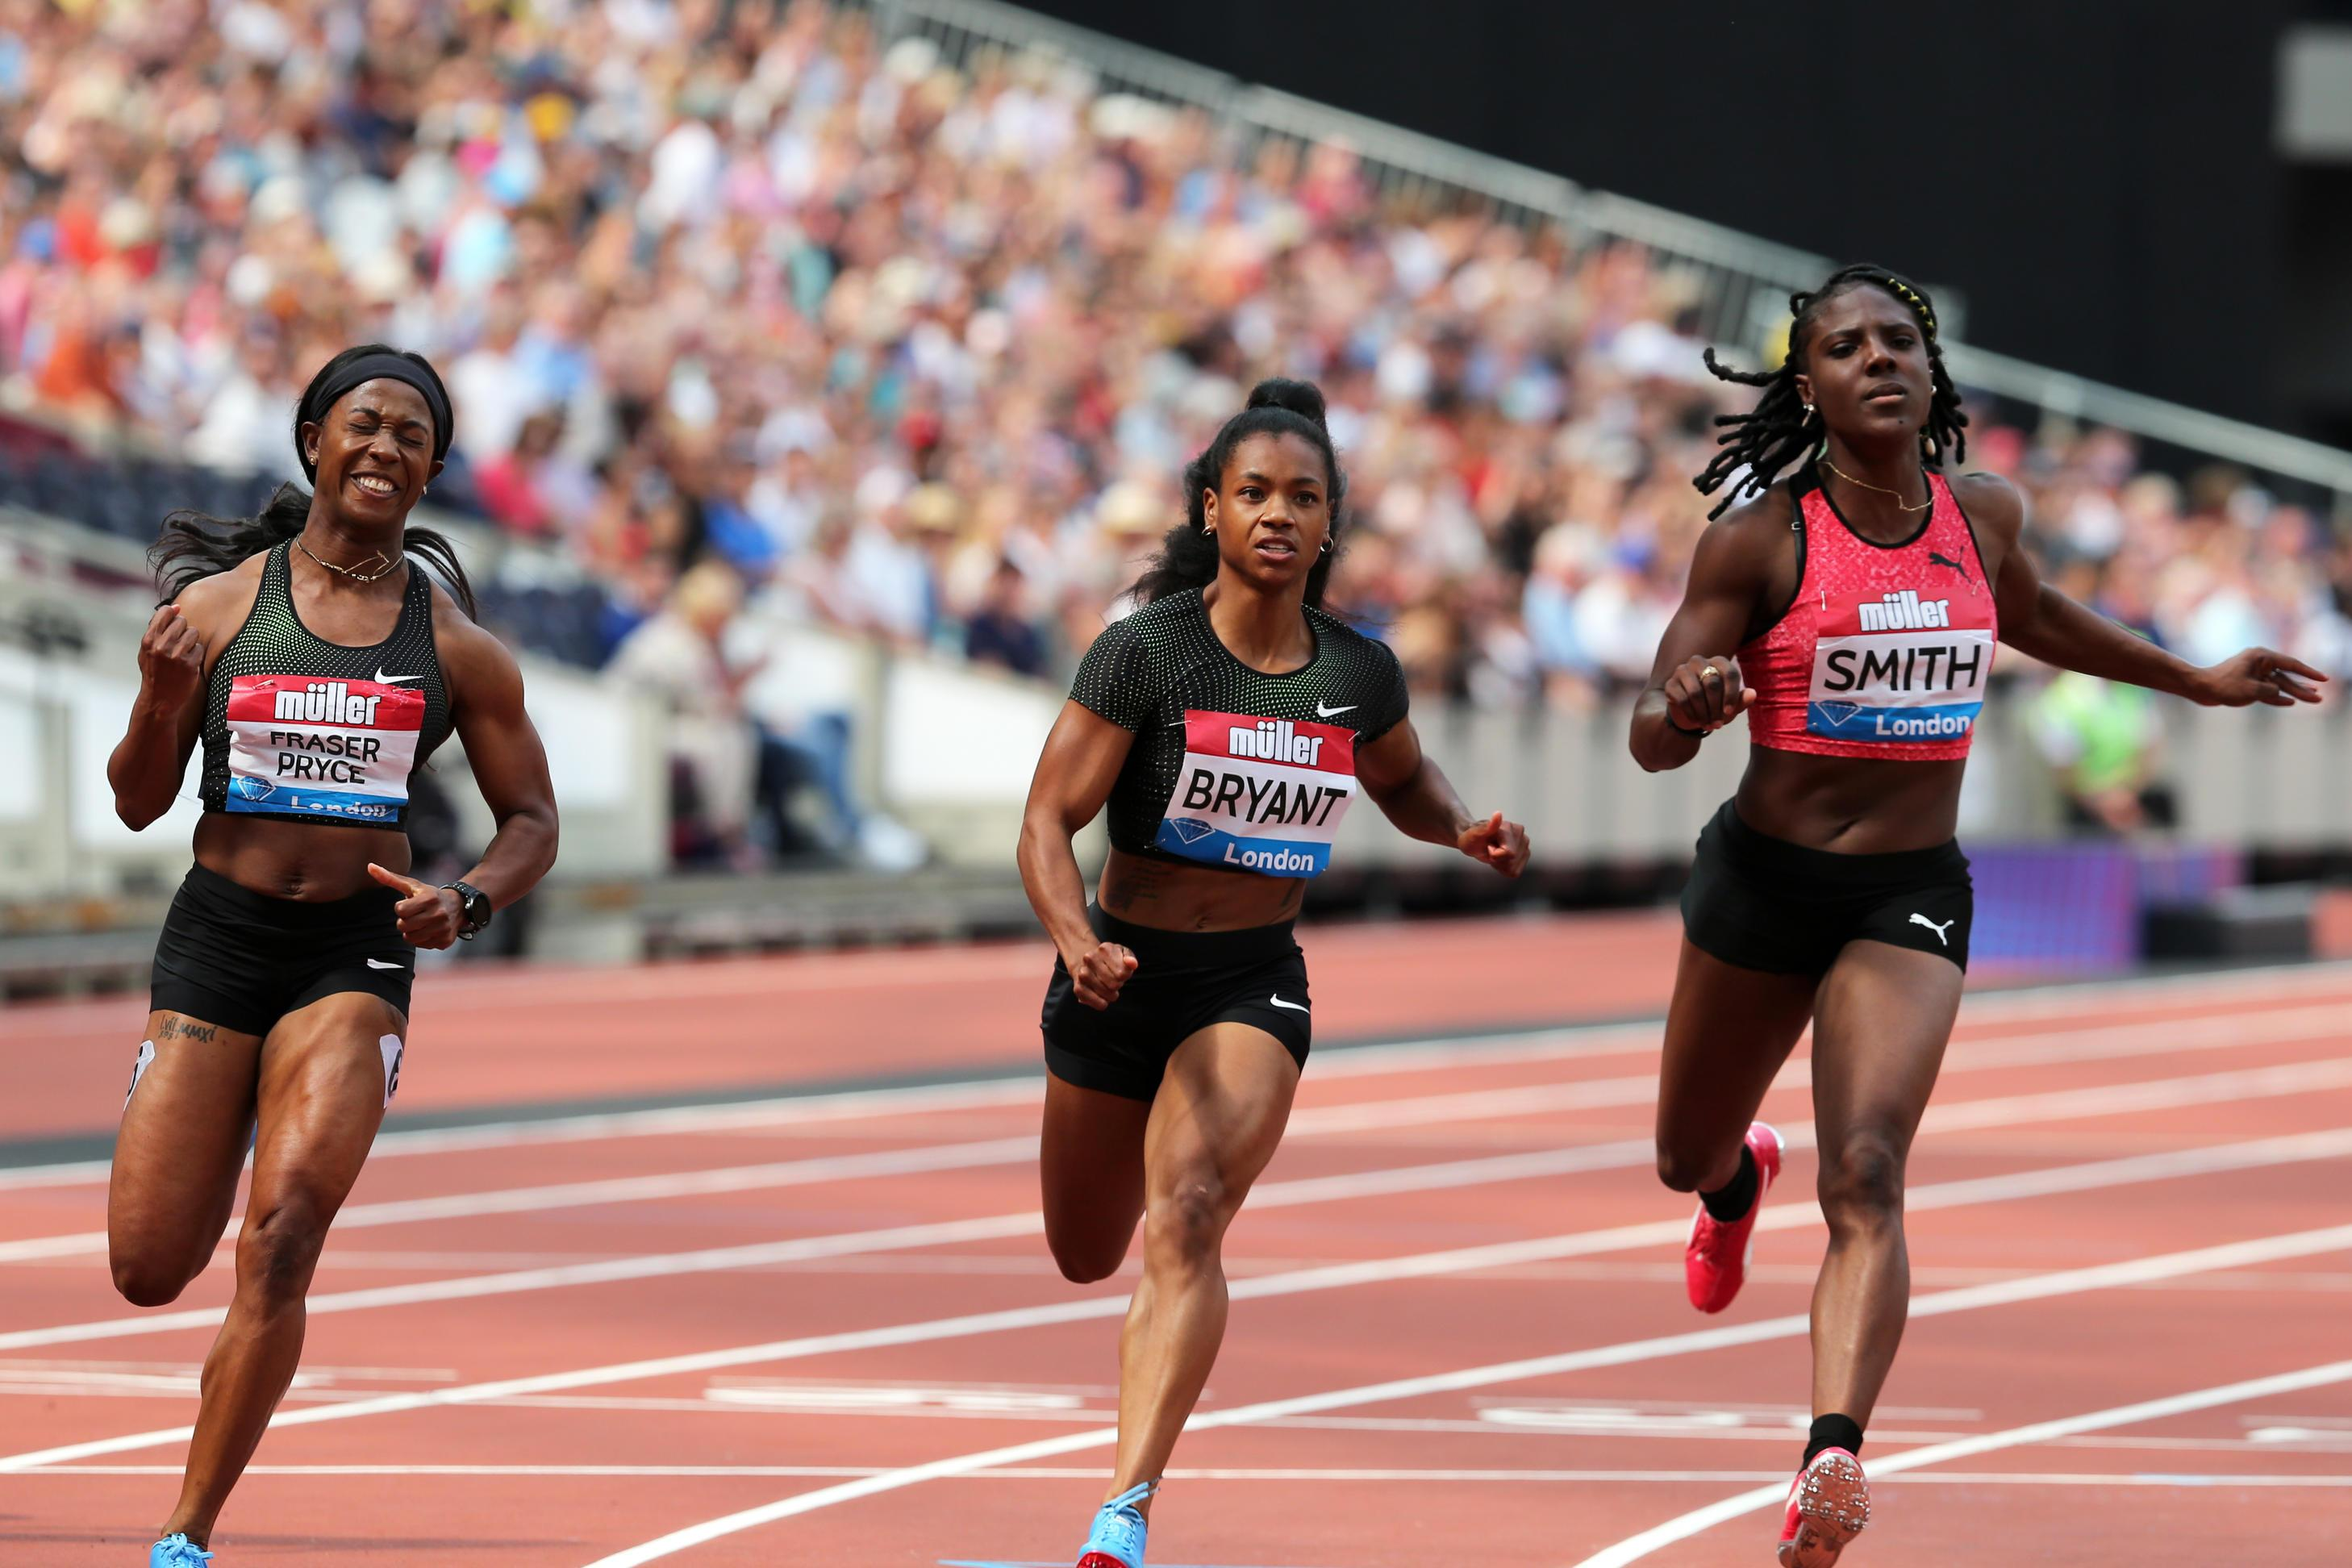 Jamaican Shelly-Ann Fraser-Pryce, left, won the women's 100 metres after coming back to the sport following the birth of her child